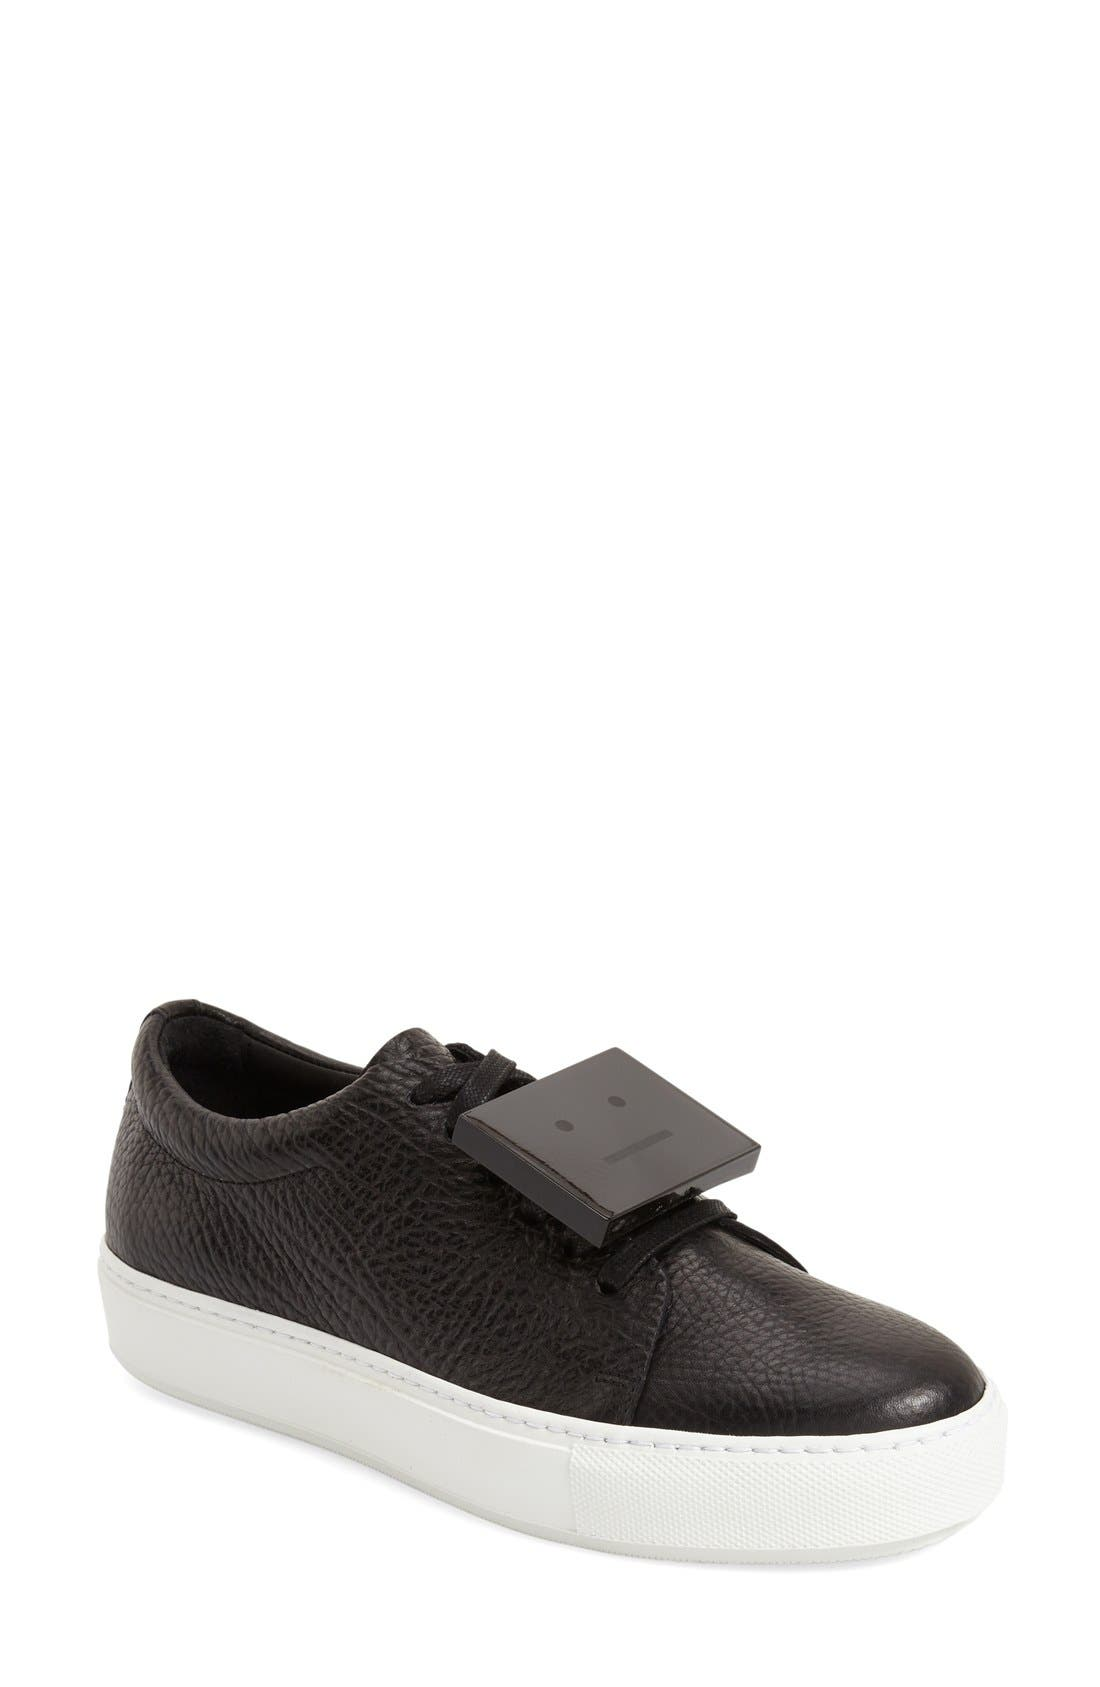 Adriana - Grain Leather Sneaker,                             Main thumbnail 1, color,                             Black Leather